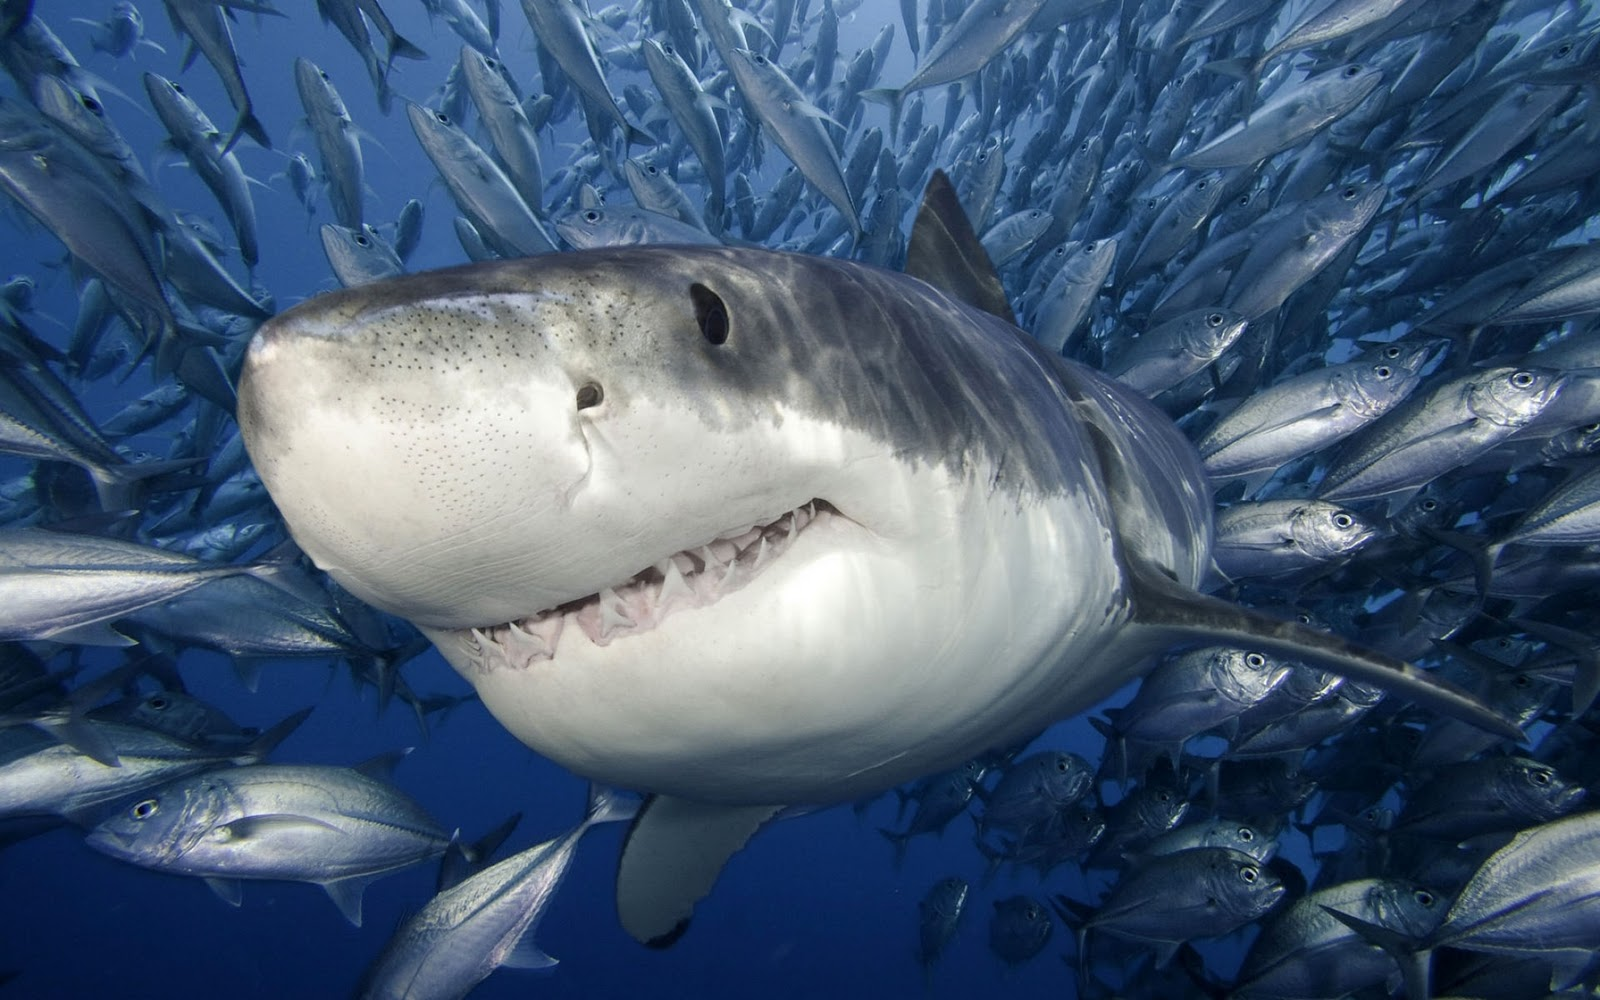 Shark Wallpaper HD Shark Pictures - HD Animal Wallpapers